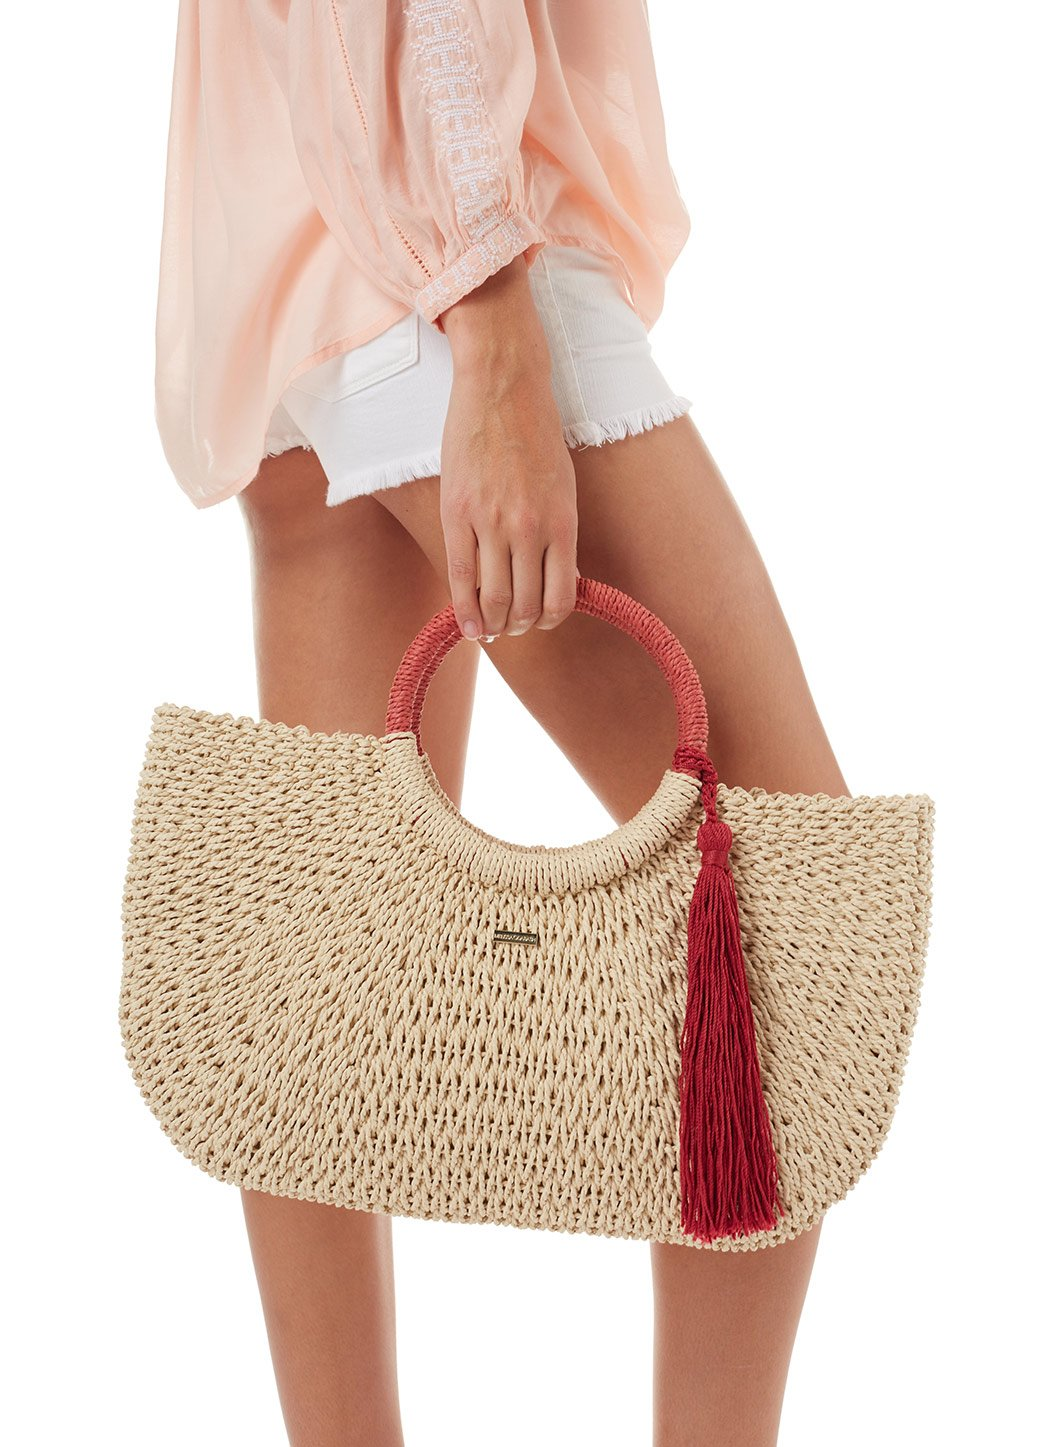 sorrento woven basket tassle bag natural cinnamon 2019 3